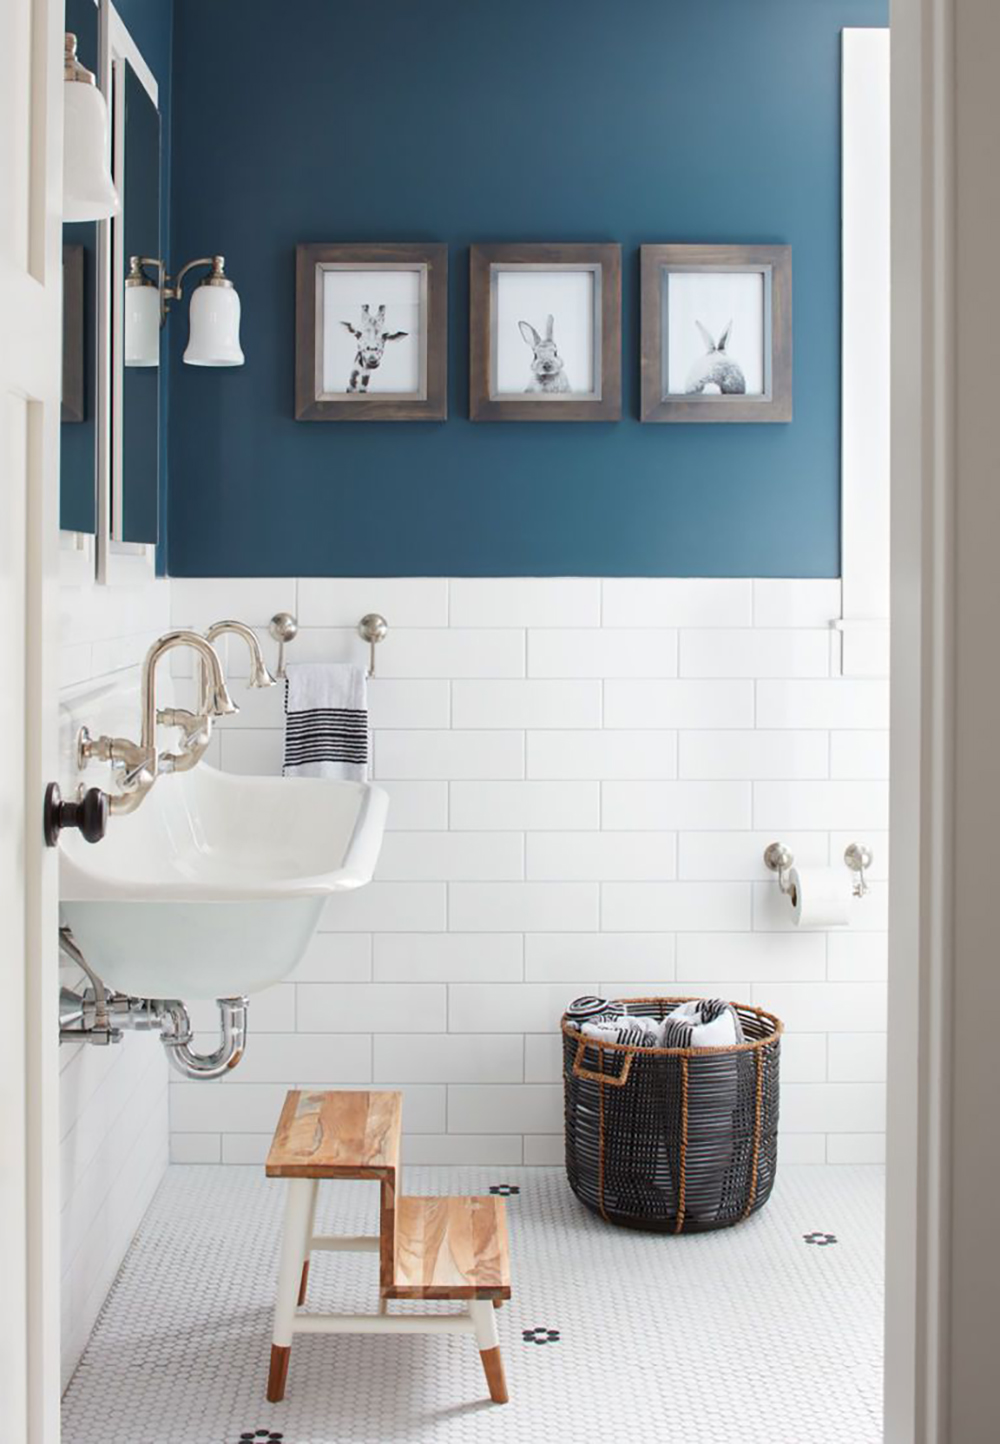 Half blue, half white bathroom with the cute animal photos - 35 ideas for blue wall colour in home decoration | Aliz's Wonderland